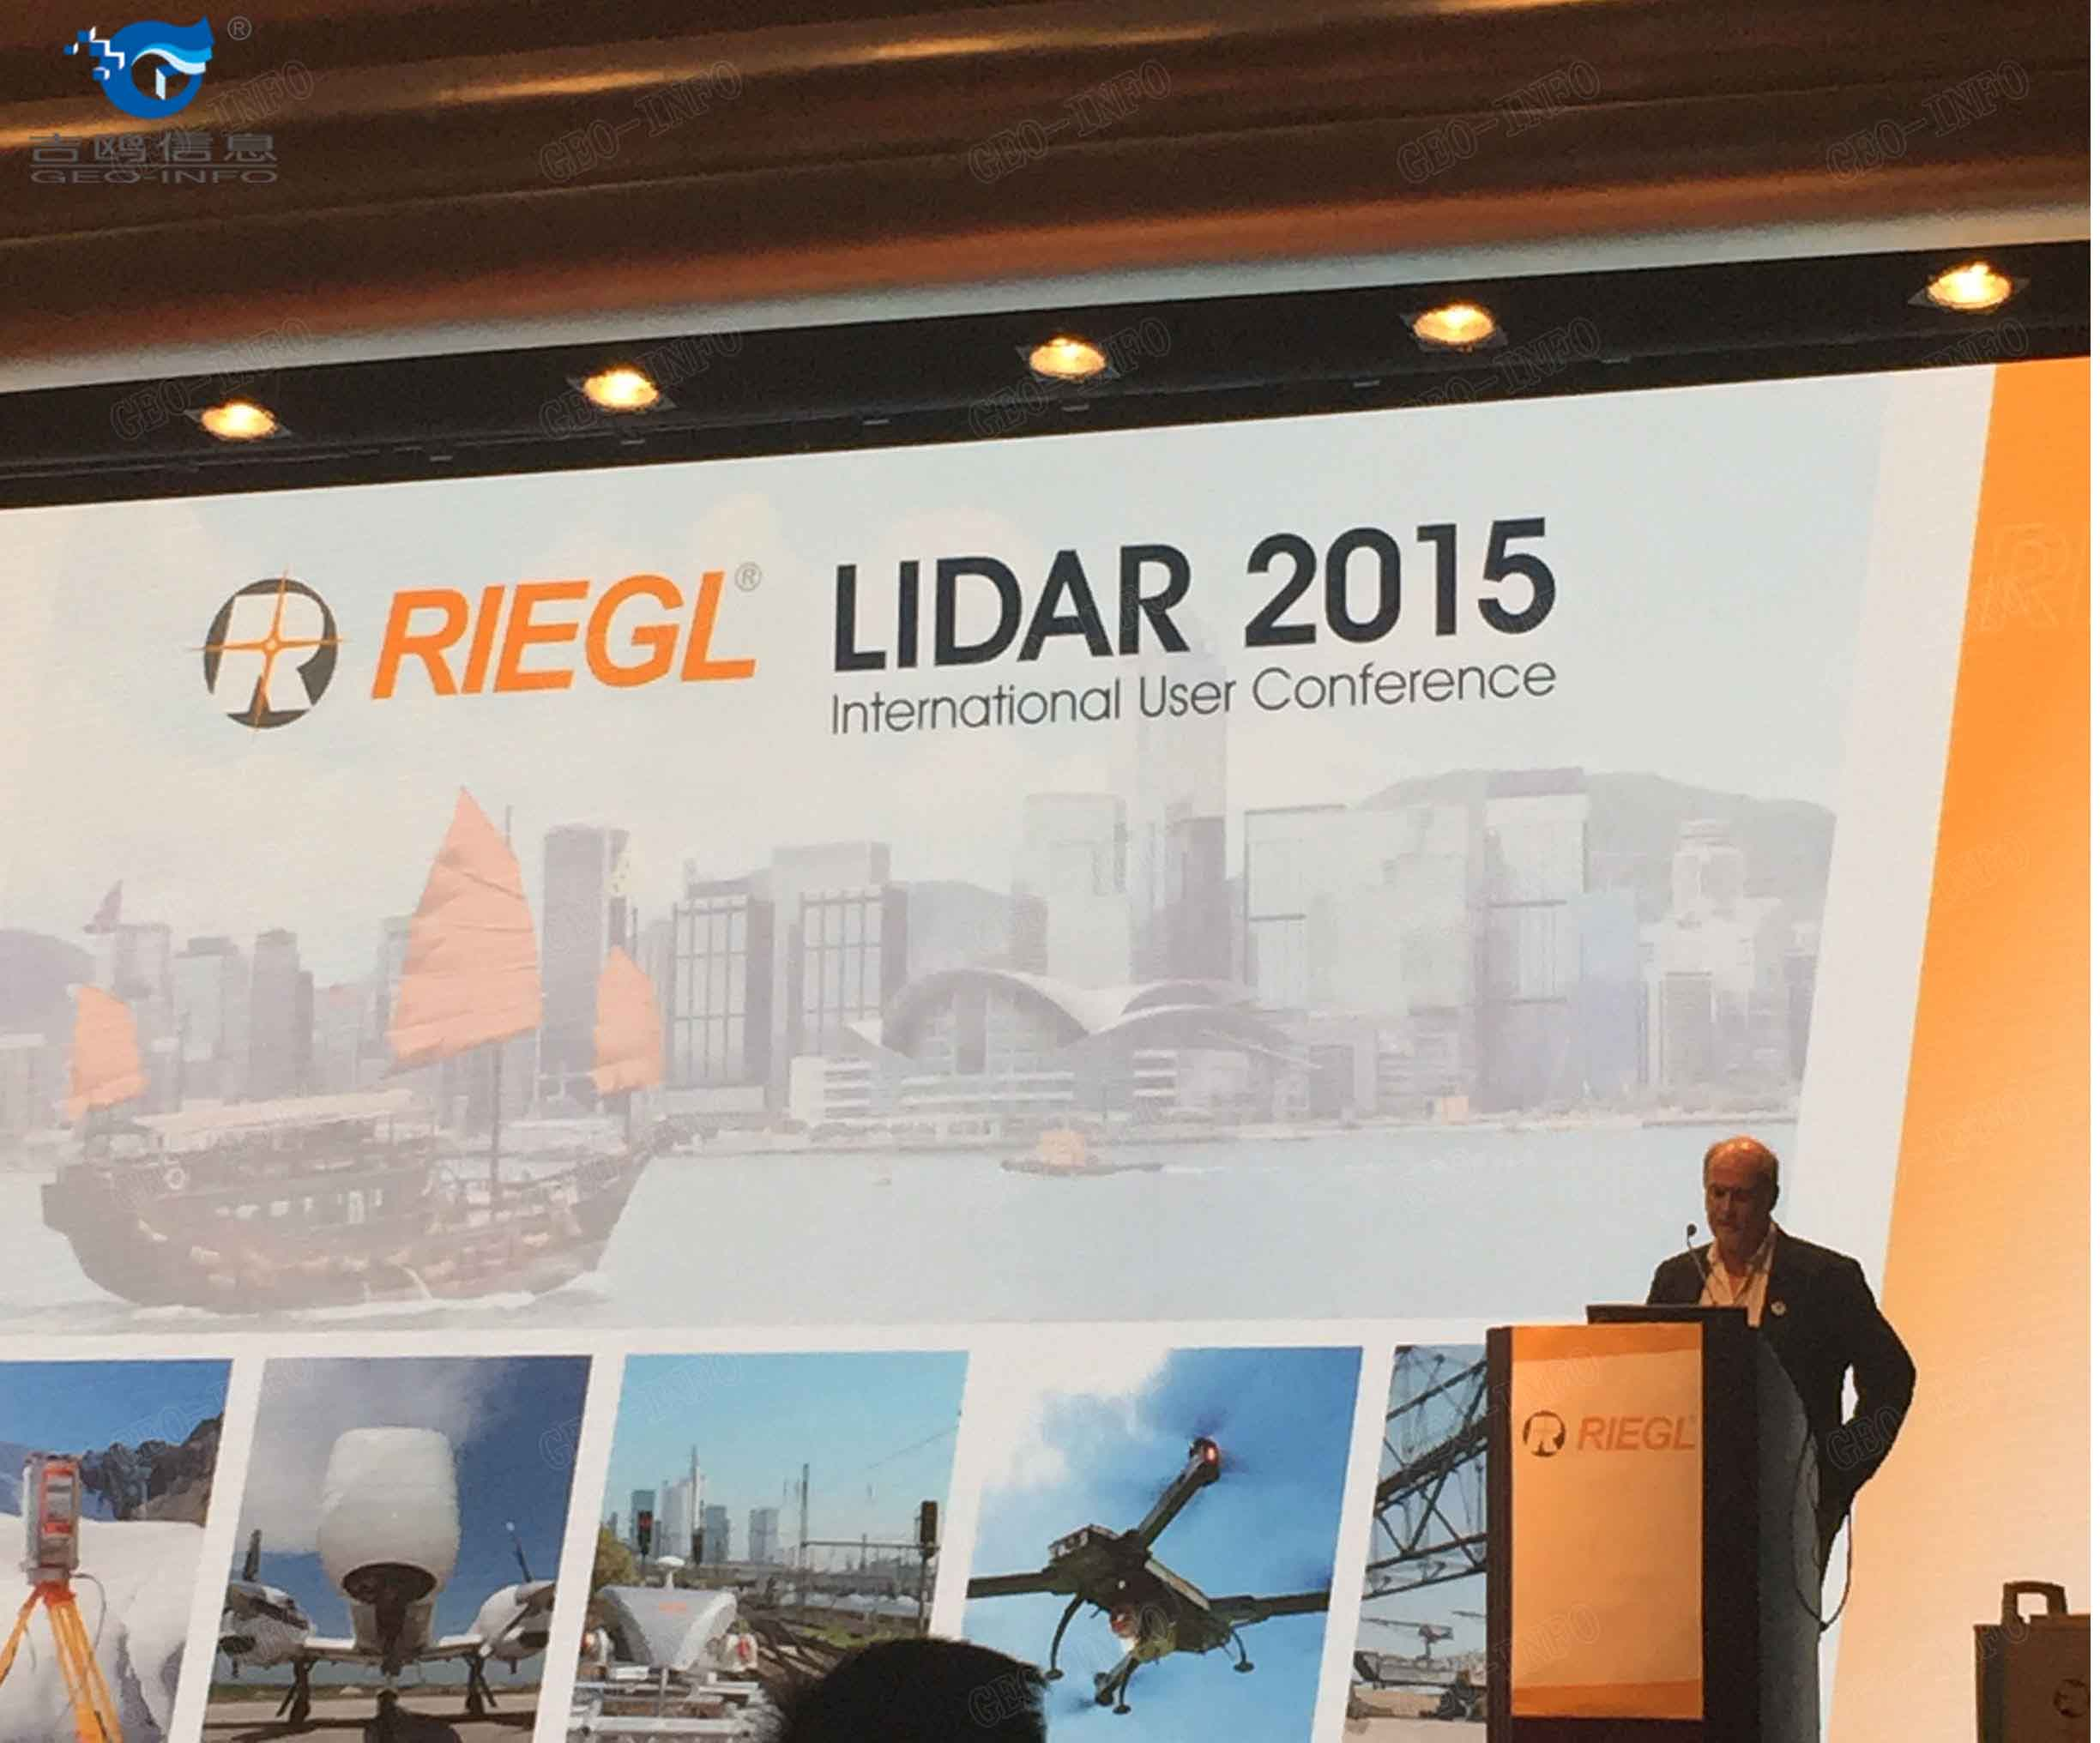 CTO at Riegl International User Conference in Hong Kong